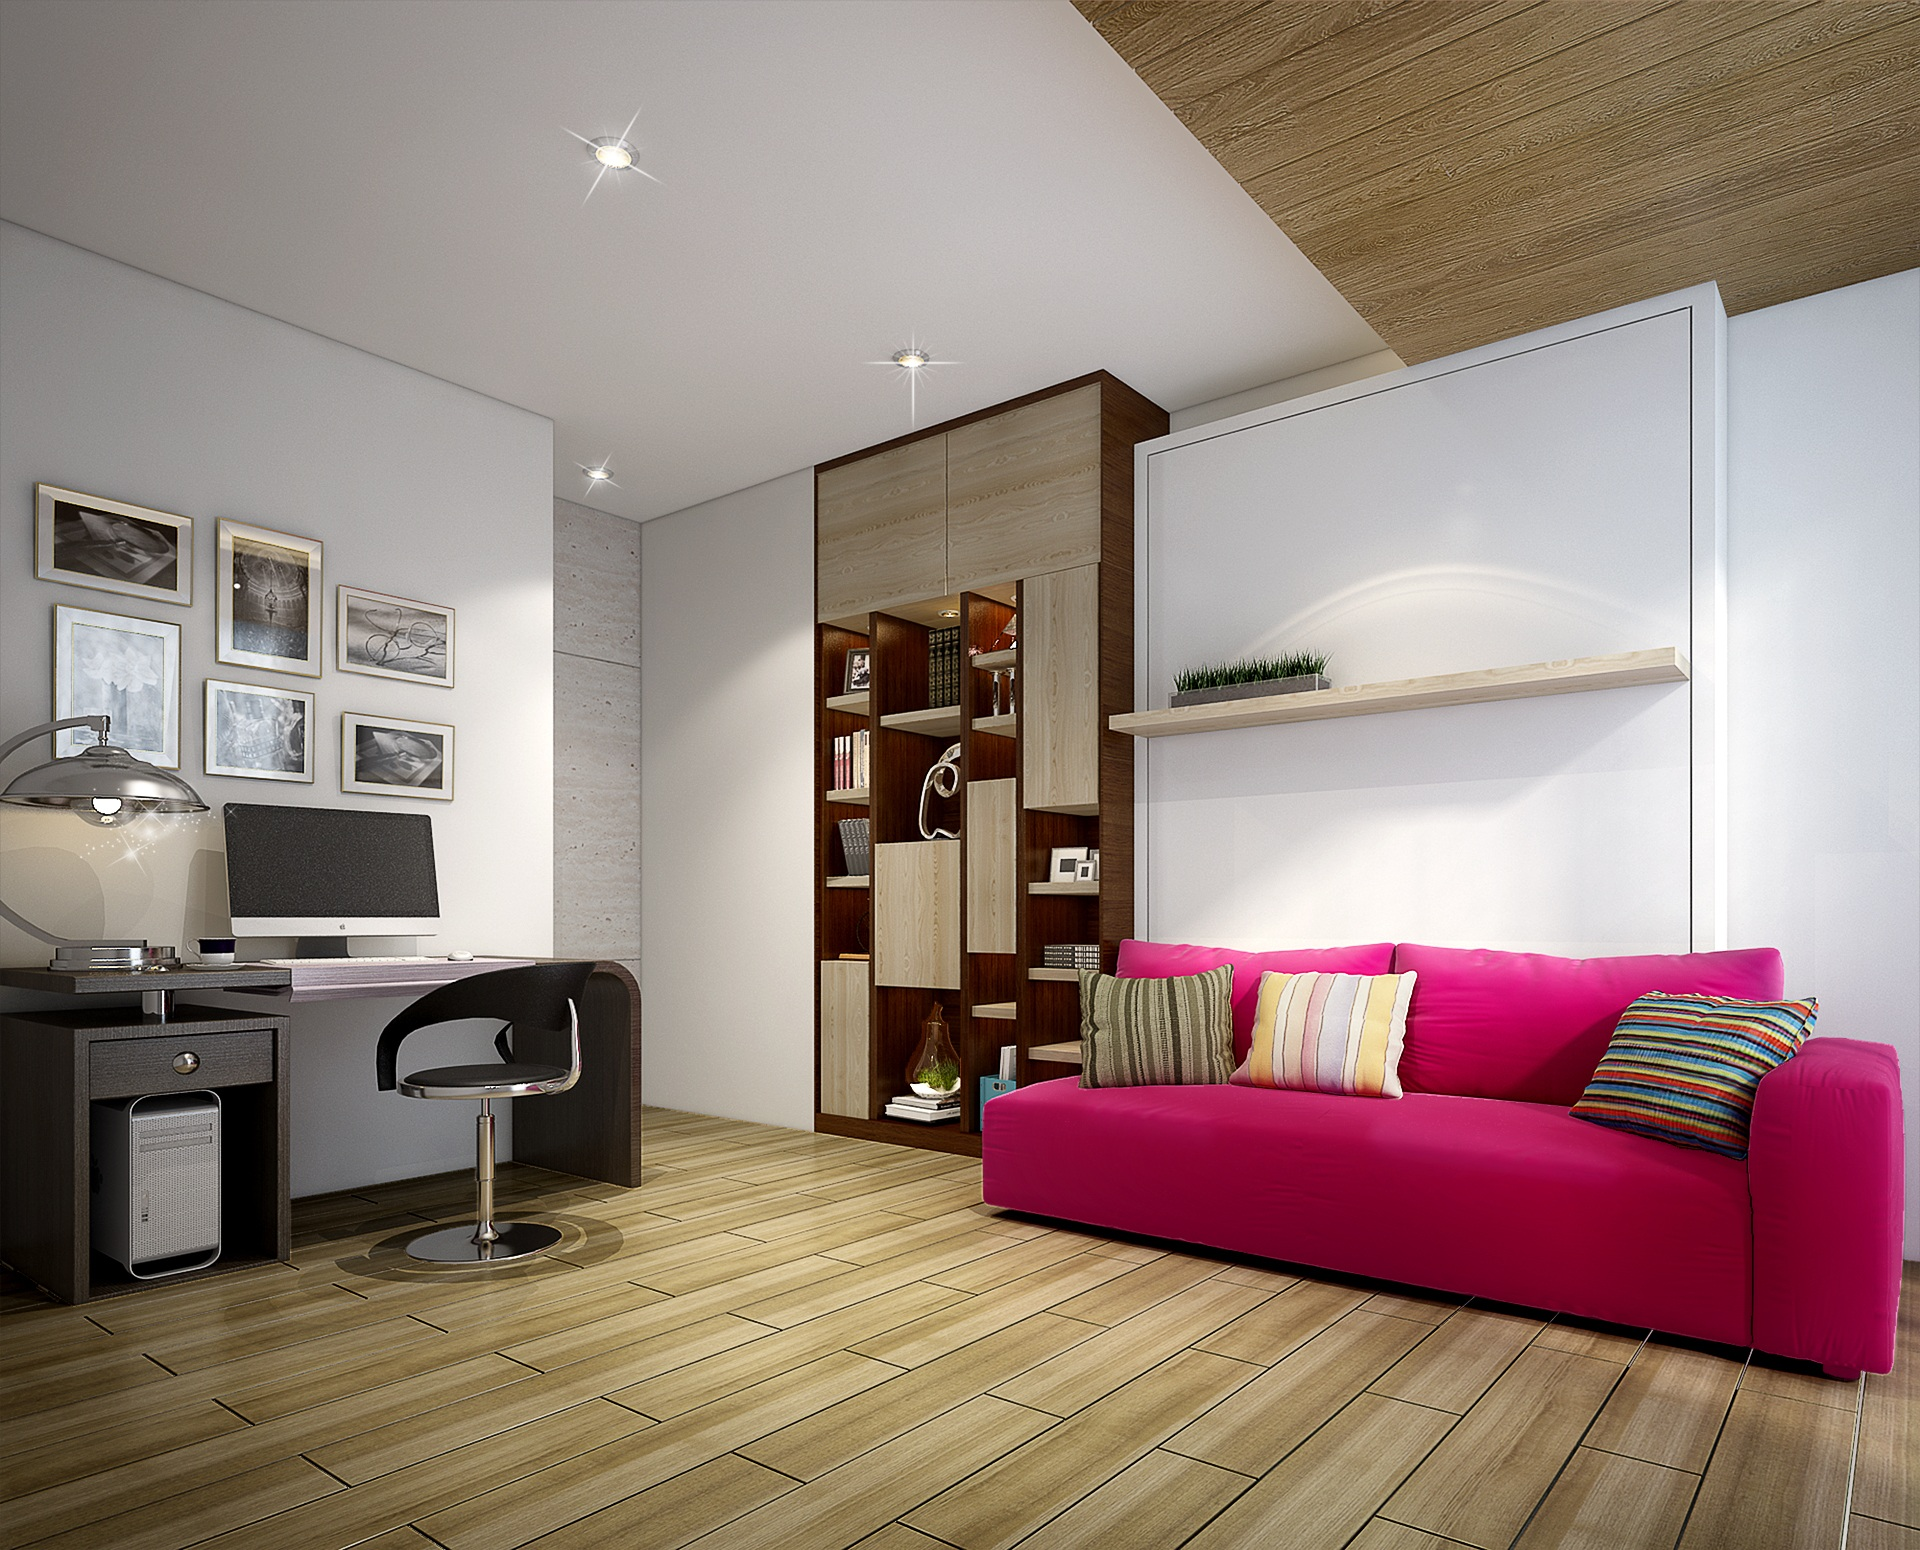 Interior 3d Design Of Bedroom For Teenager Free Image